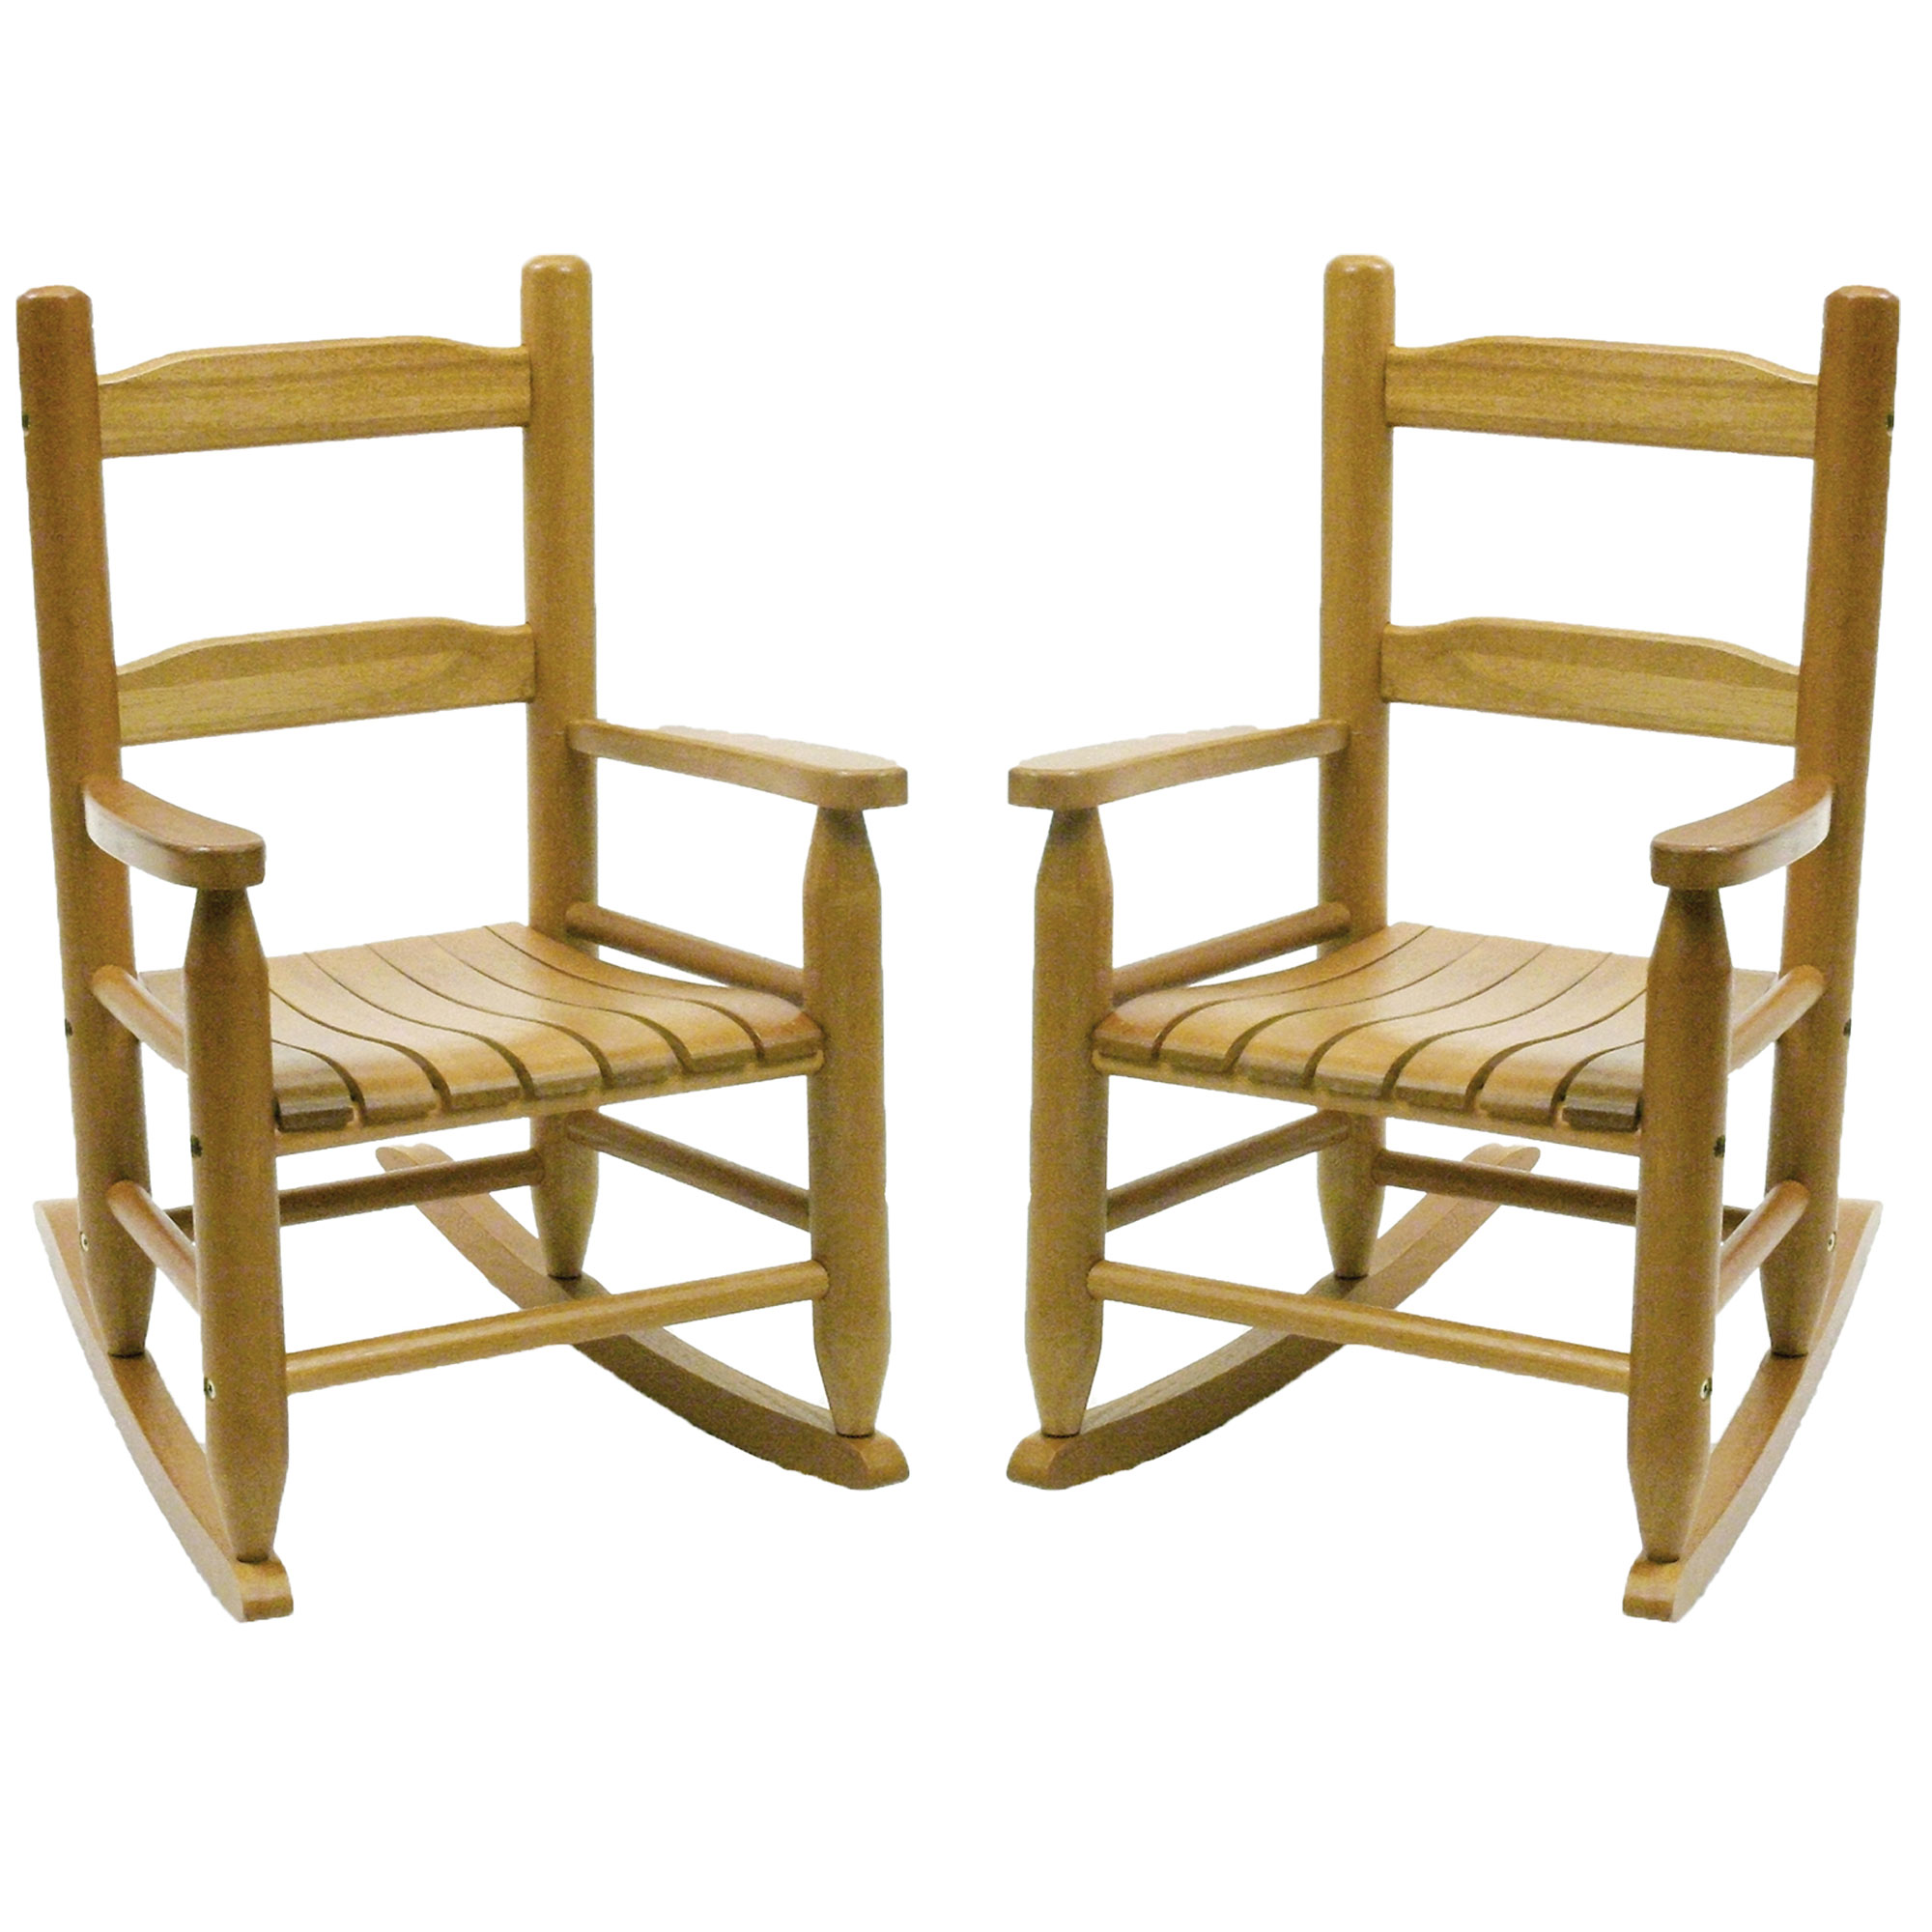 Child Wooden Rocking Chair Details About Lipper Child S Eco Friendly Rubberwood Rocking Chair Natural Finish 2 Pack